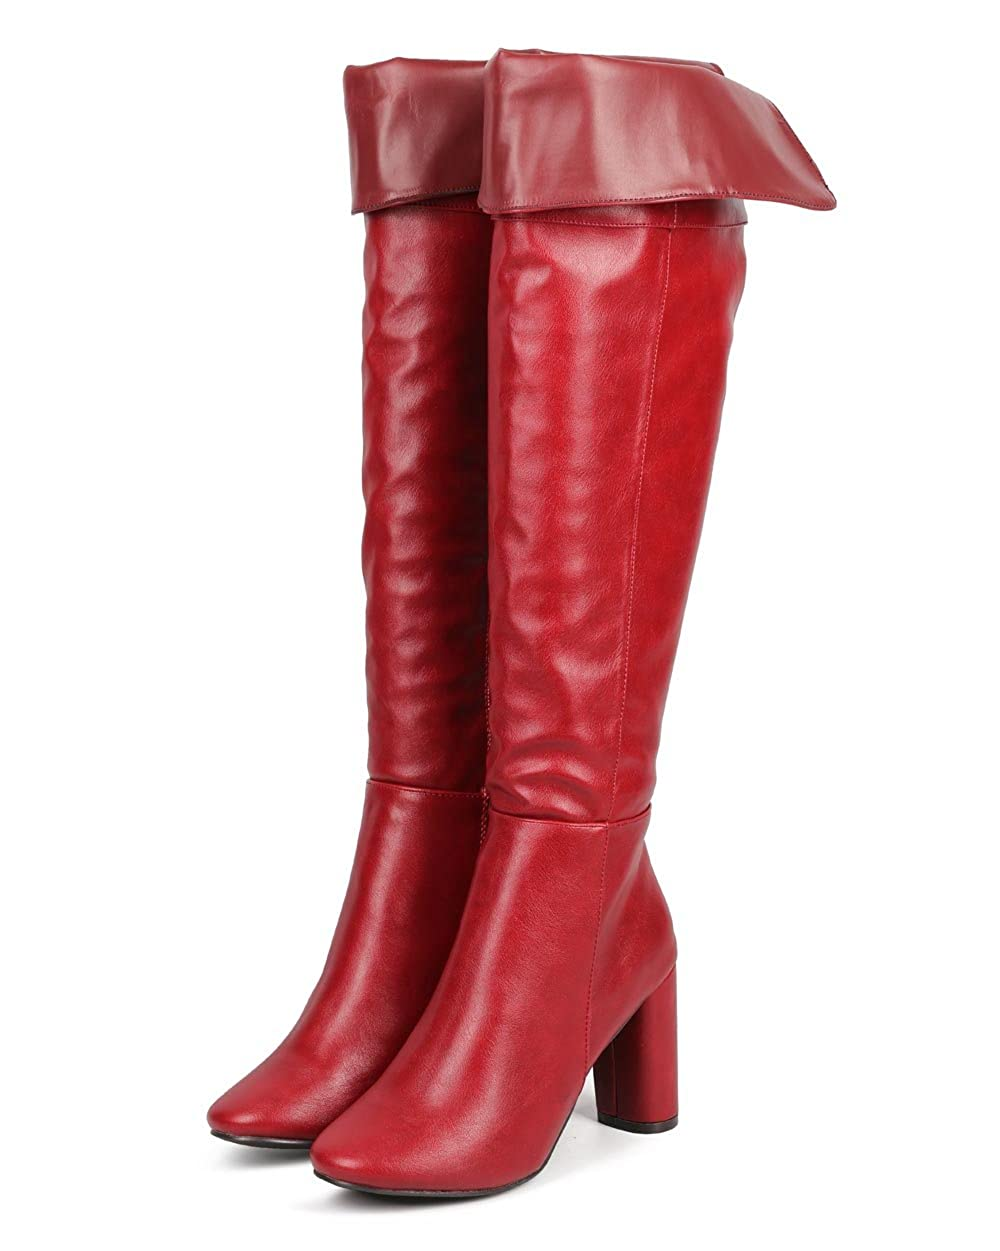 Women's Red Faux Leather Fold Over Knee-High Tailored Boot - DeluxeAdultCostumes.com